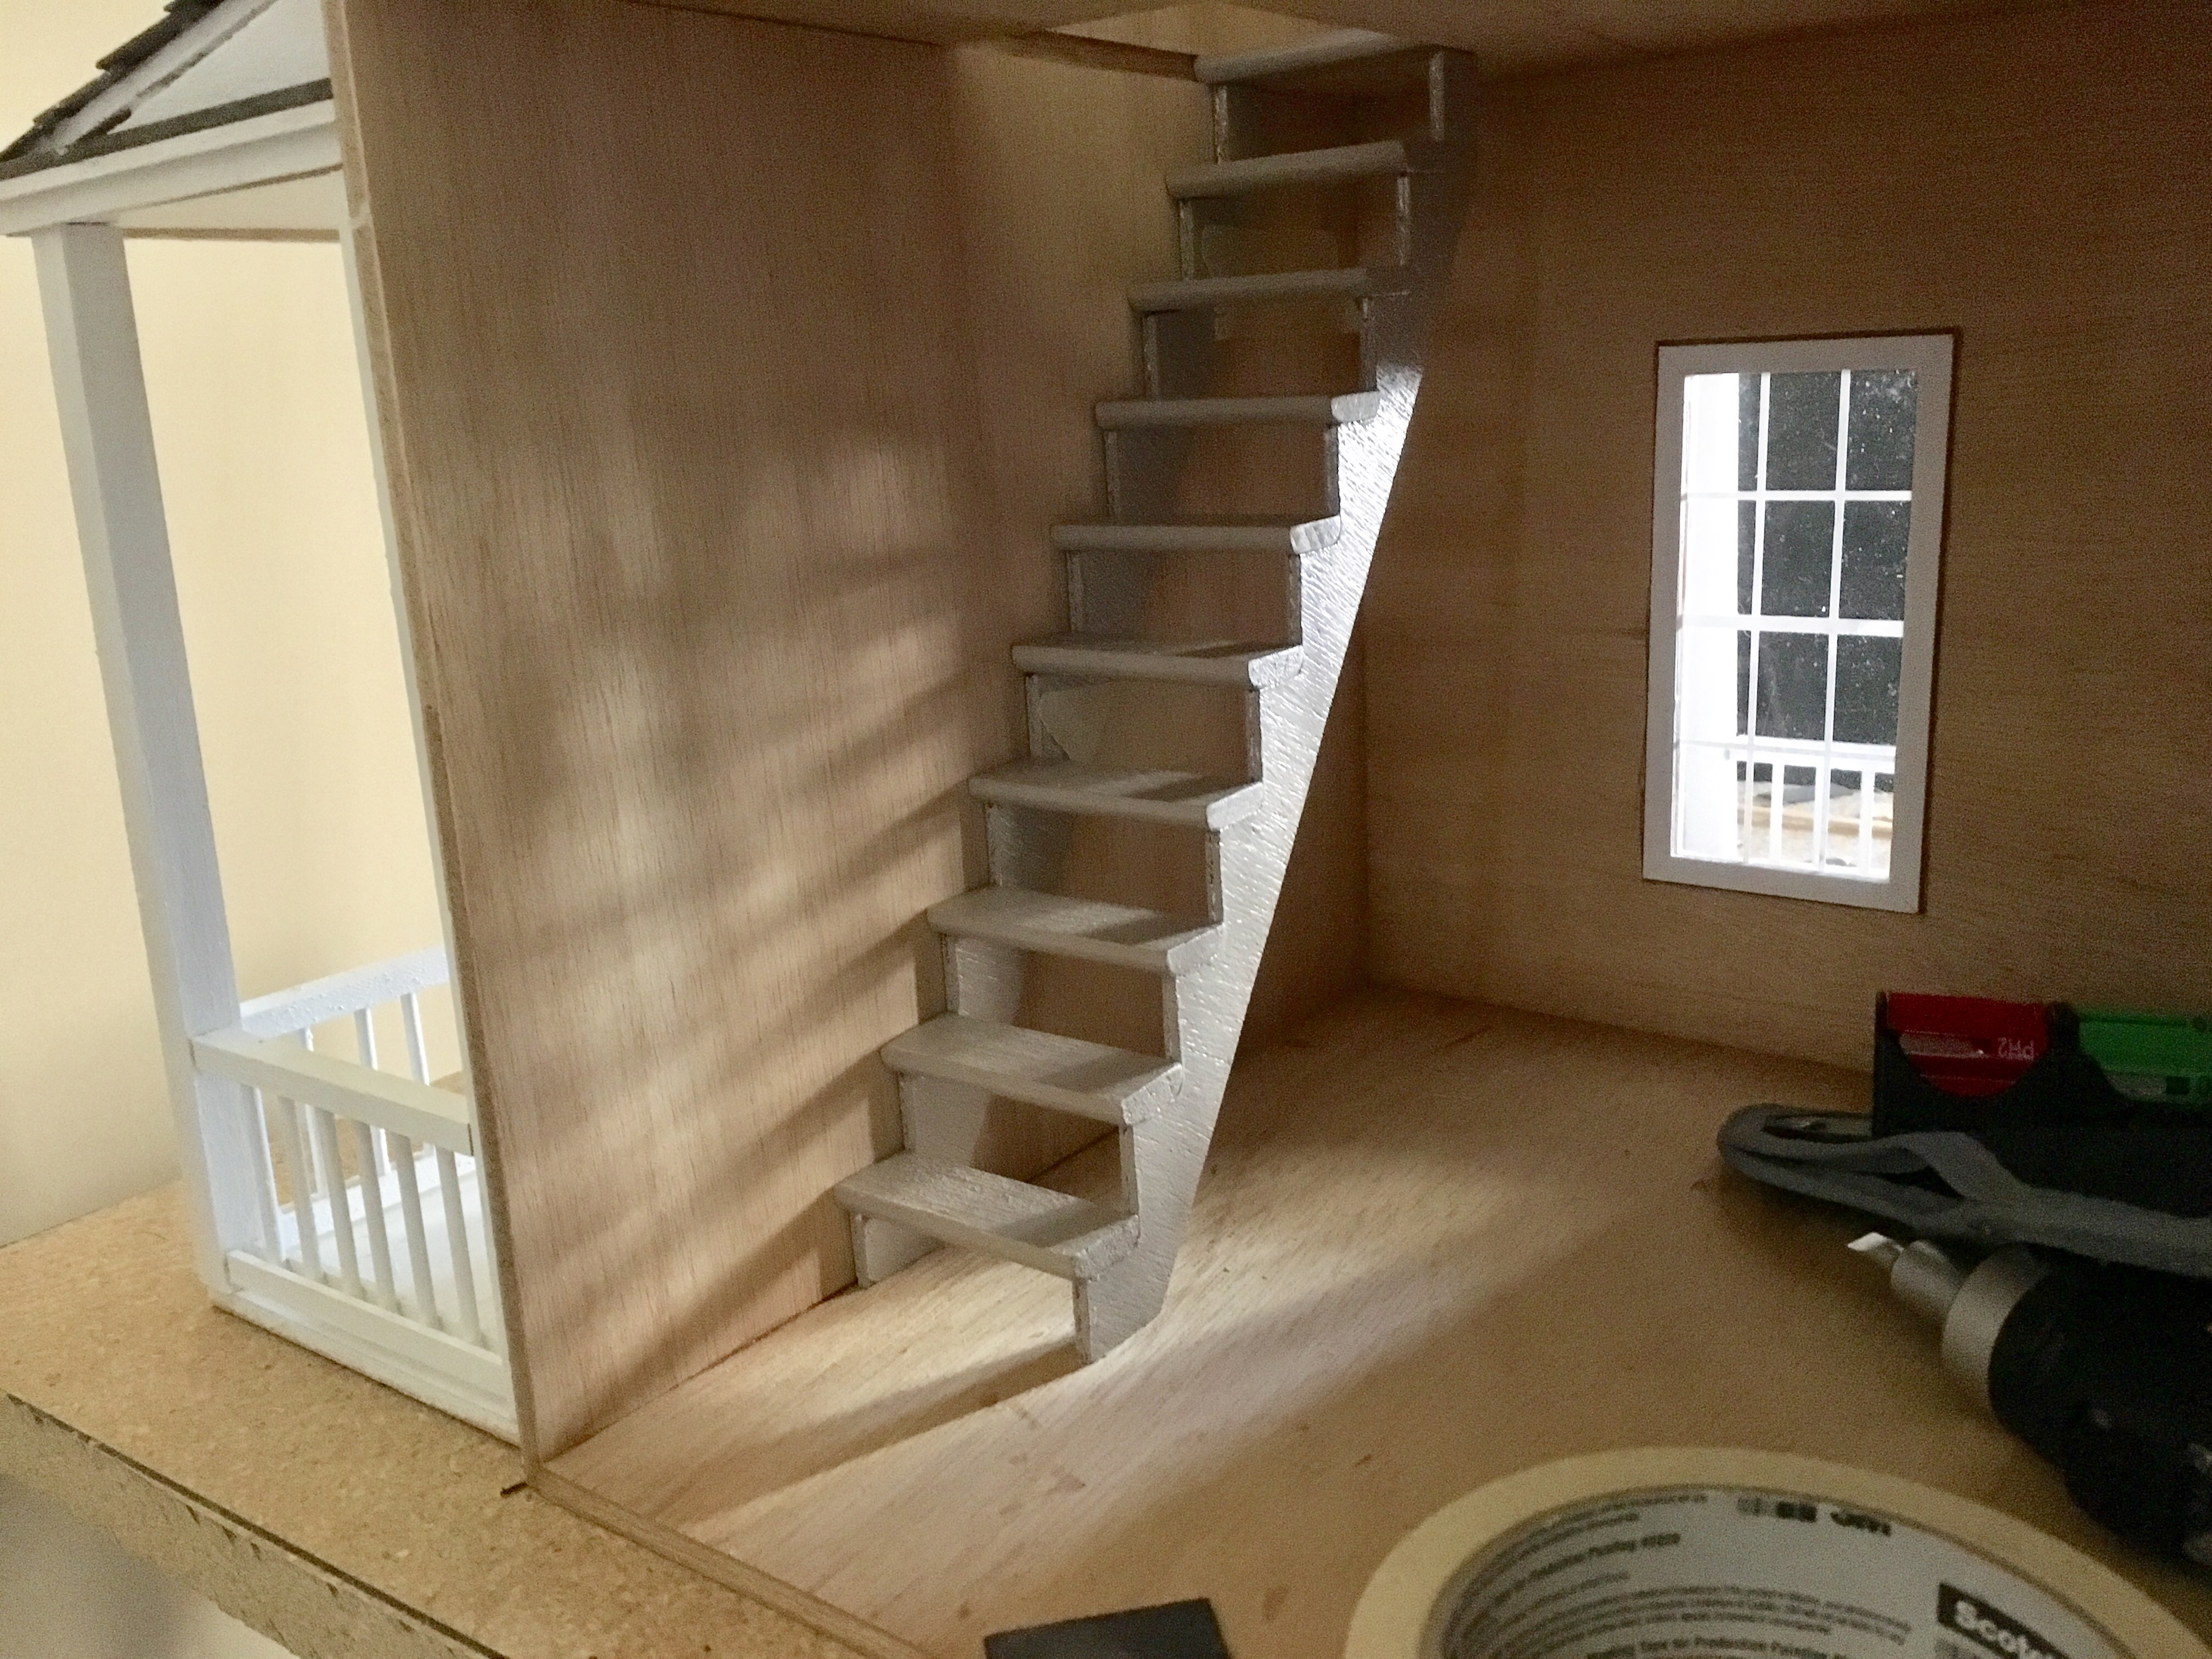 ... Stairs As Well As My Non Glued In Place Steps. Gotta Paint And Do  Flooring Enforce Making It Permanent. Thanks For Any Recommendations You Can  Give Me!